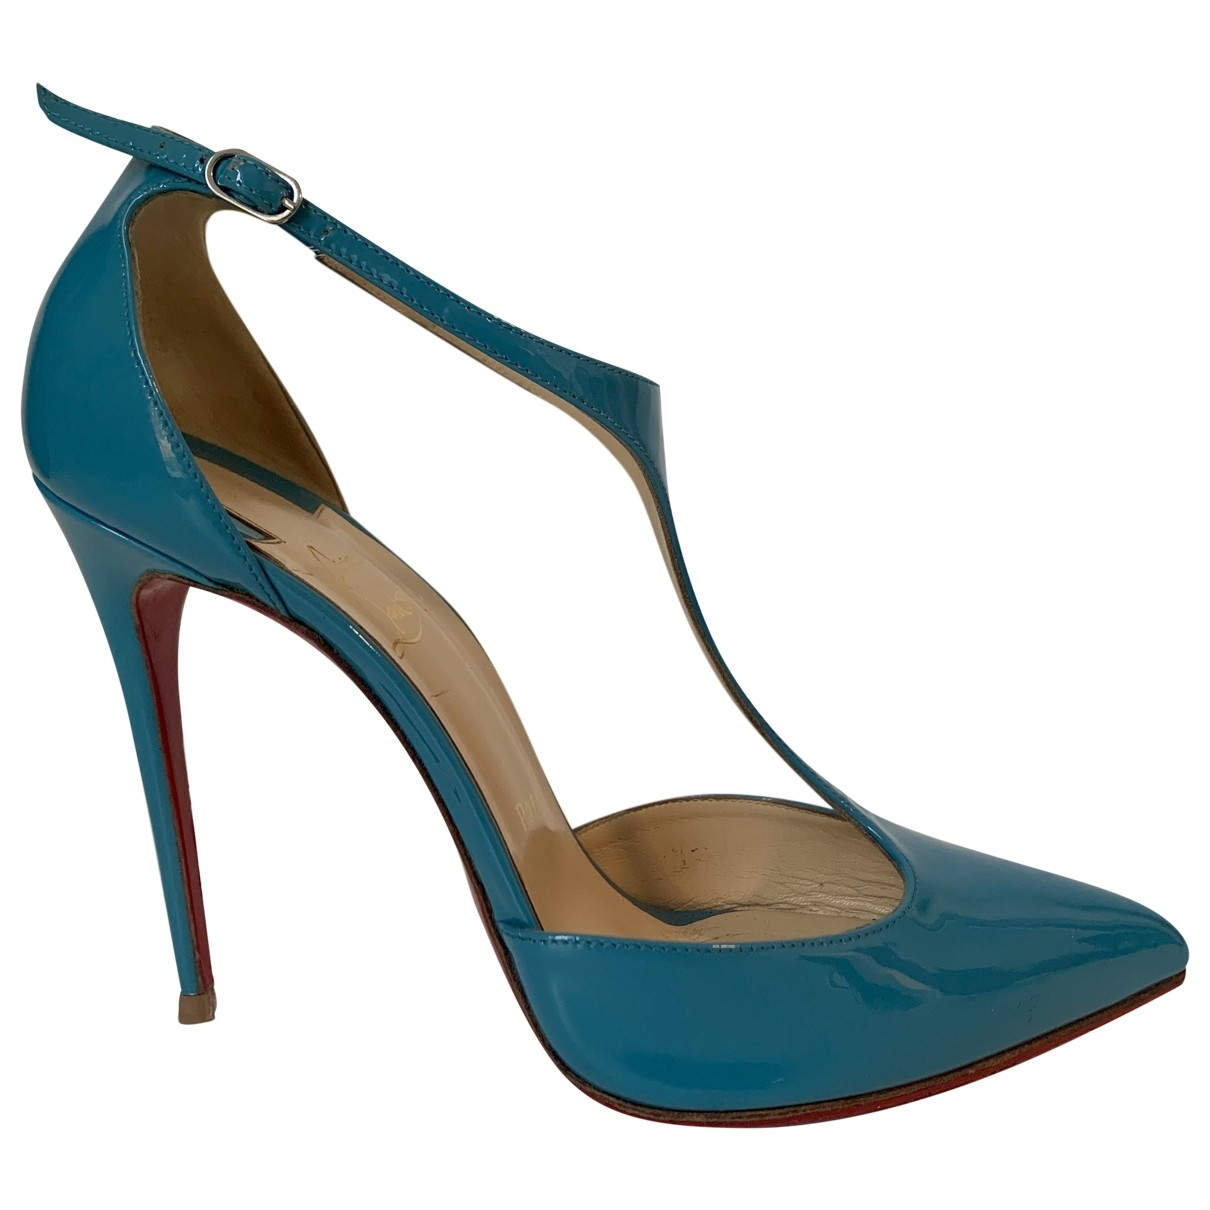 Christian Louboutin \N Blue Patent leather Heels for Women 39 EU